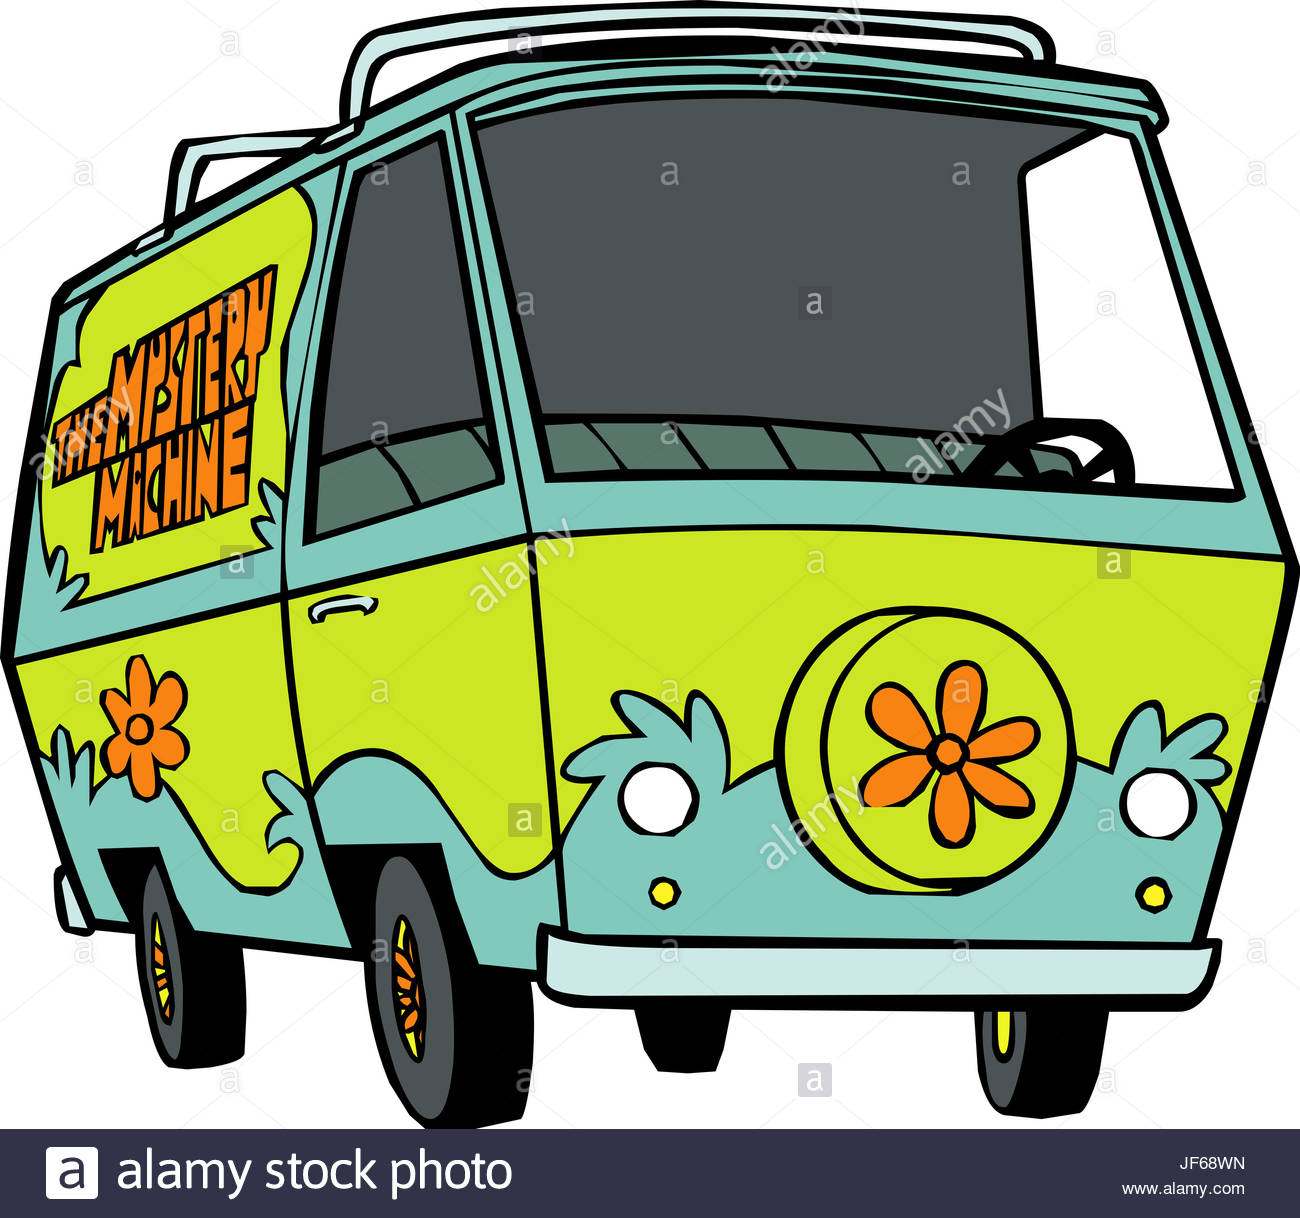 Mystery machine van illustration stock photo 147041489 - Personnage scoubidou ...